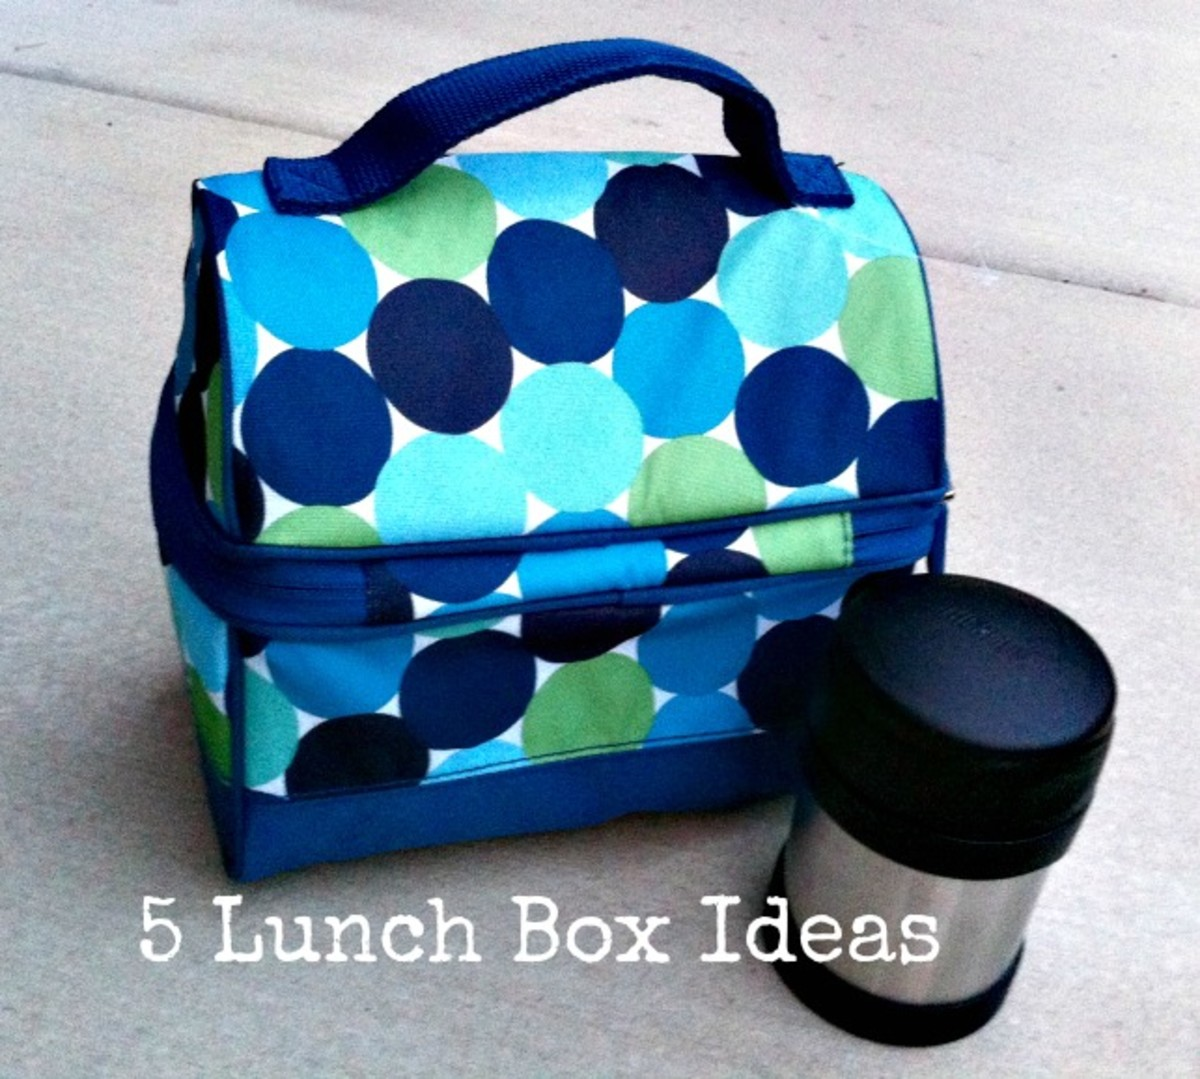 5 Lunch Box Menu Ideas - A Week of School Lunch Menu Ideas